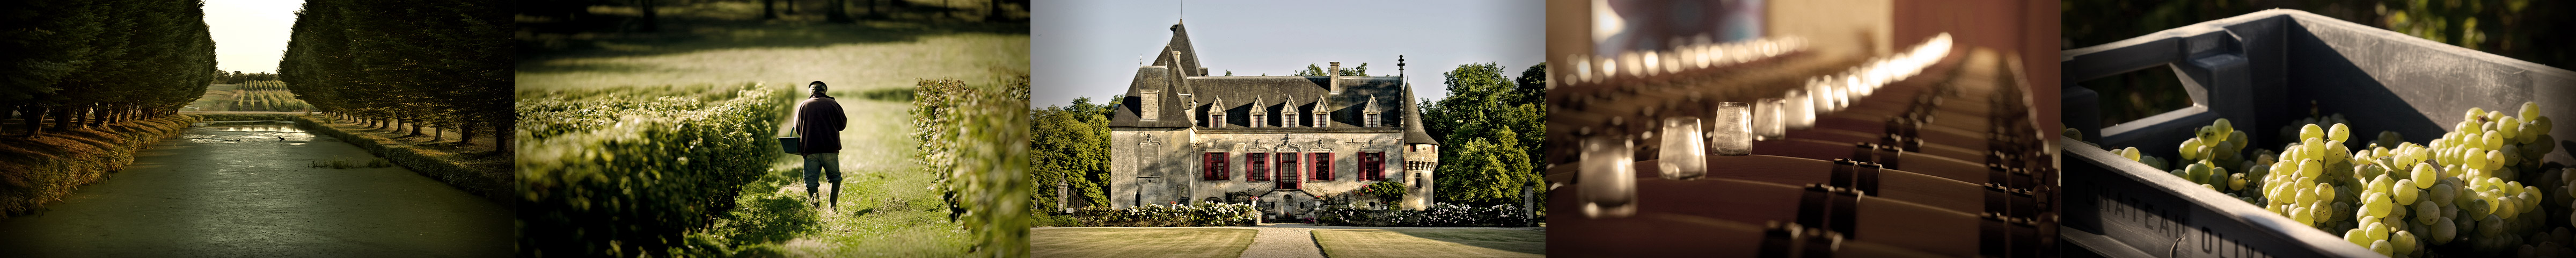 Google images for Chateau olivier